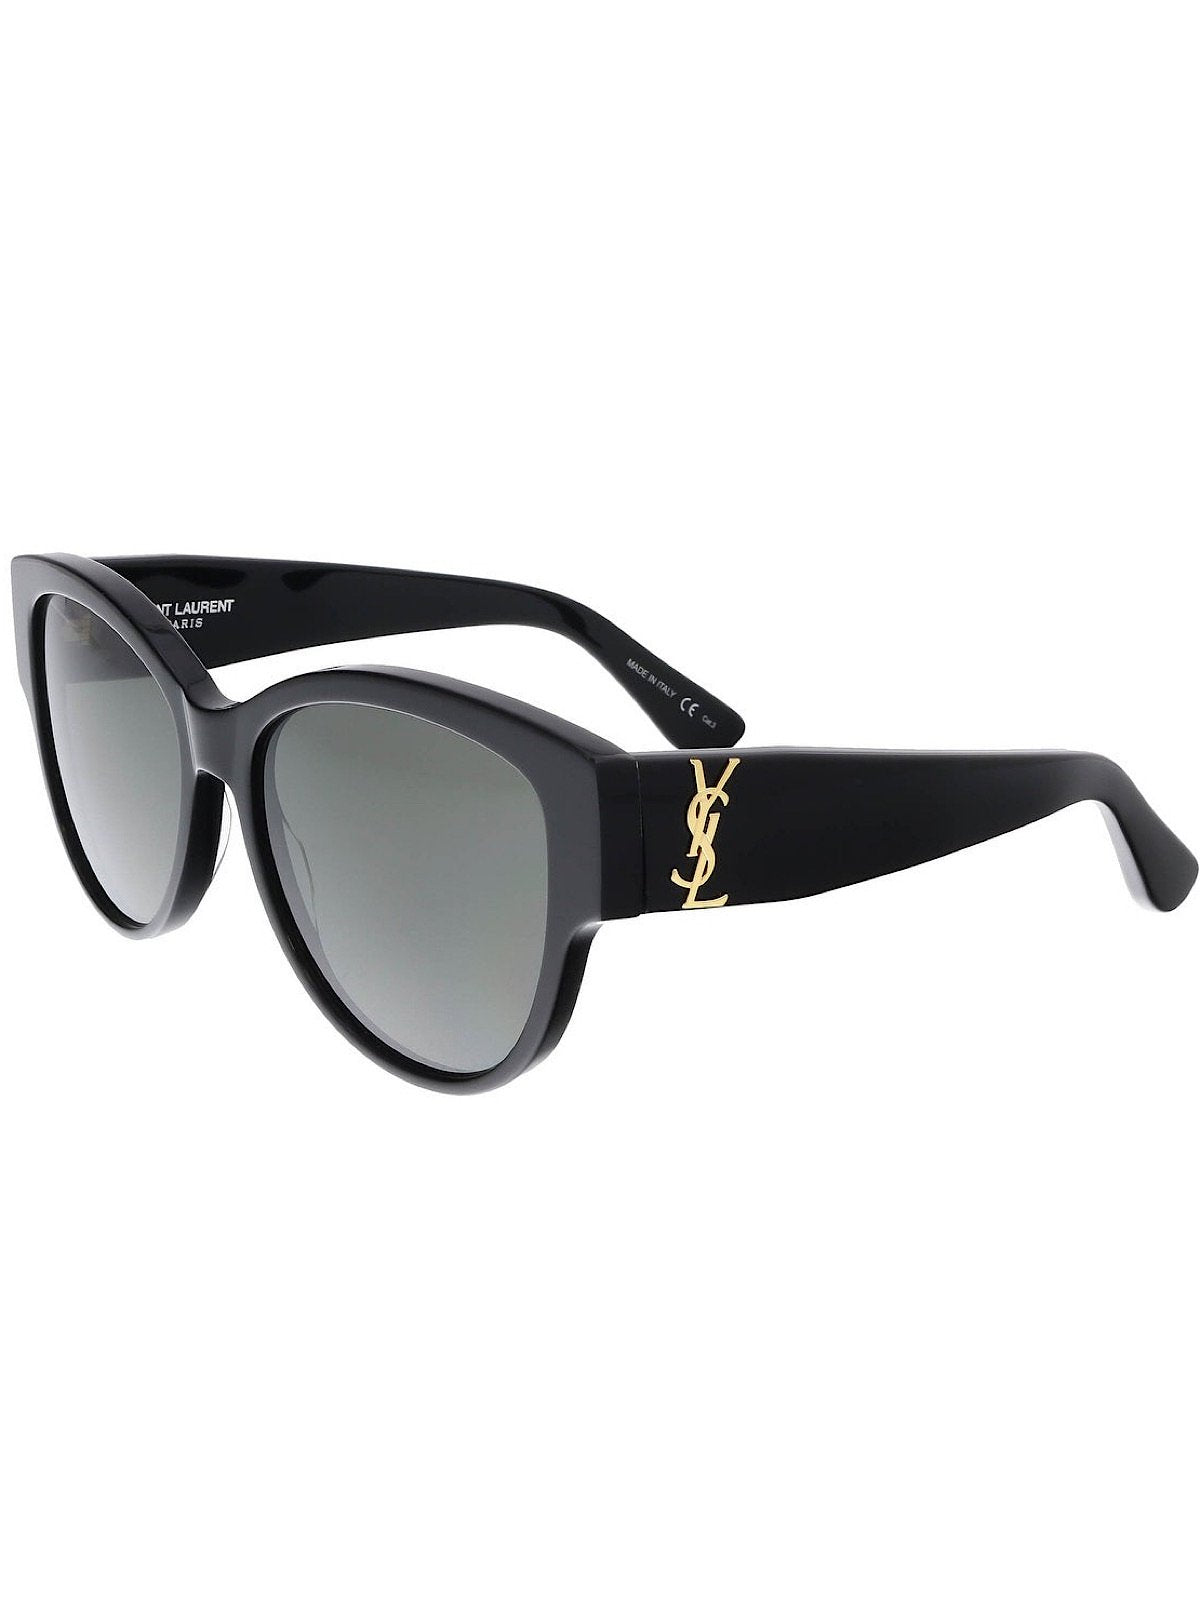 Saint Laurent Sunglasses - Black - SL M3 002